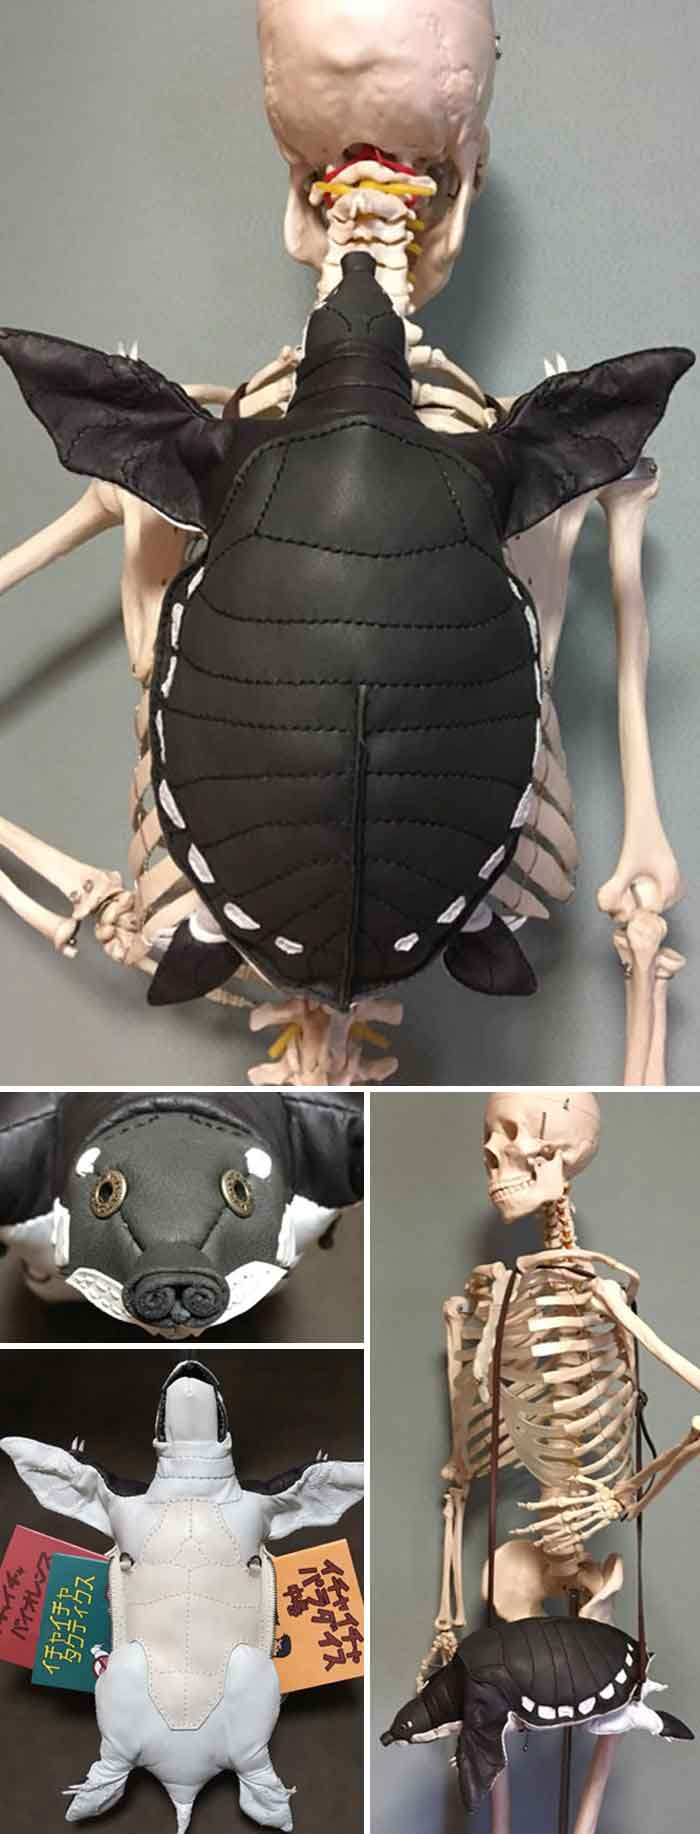 amaheso creature-inspired handbags black turtle